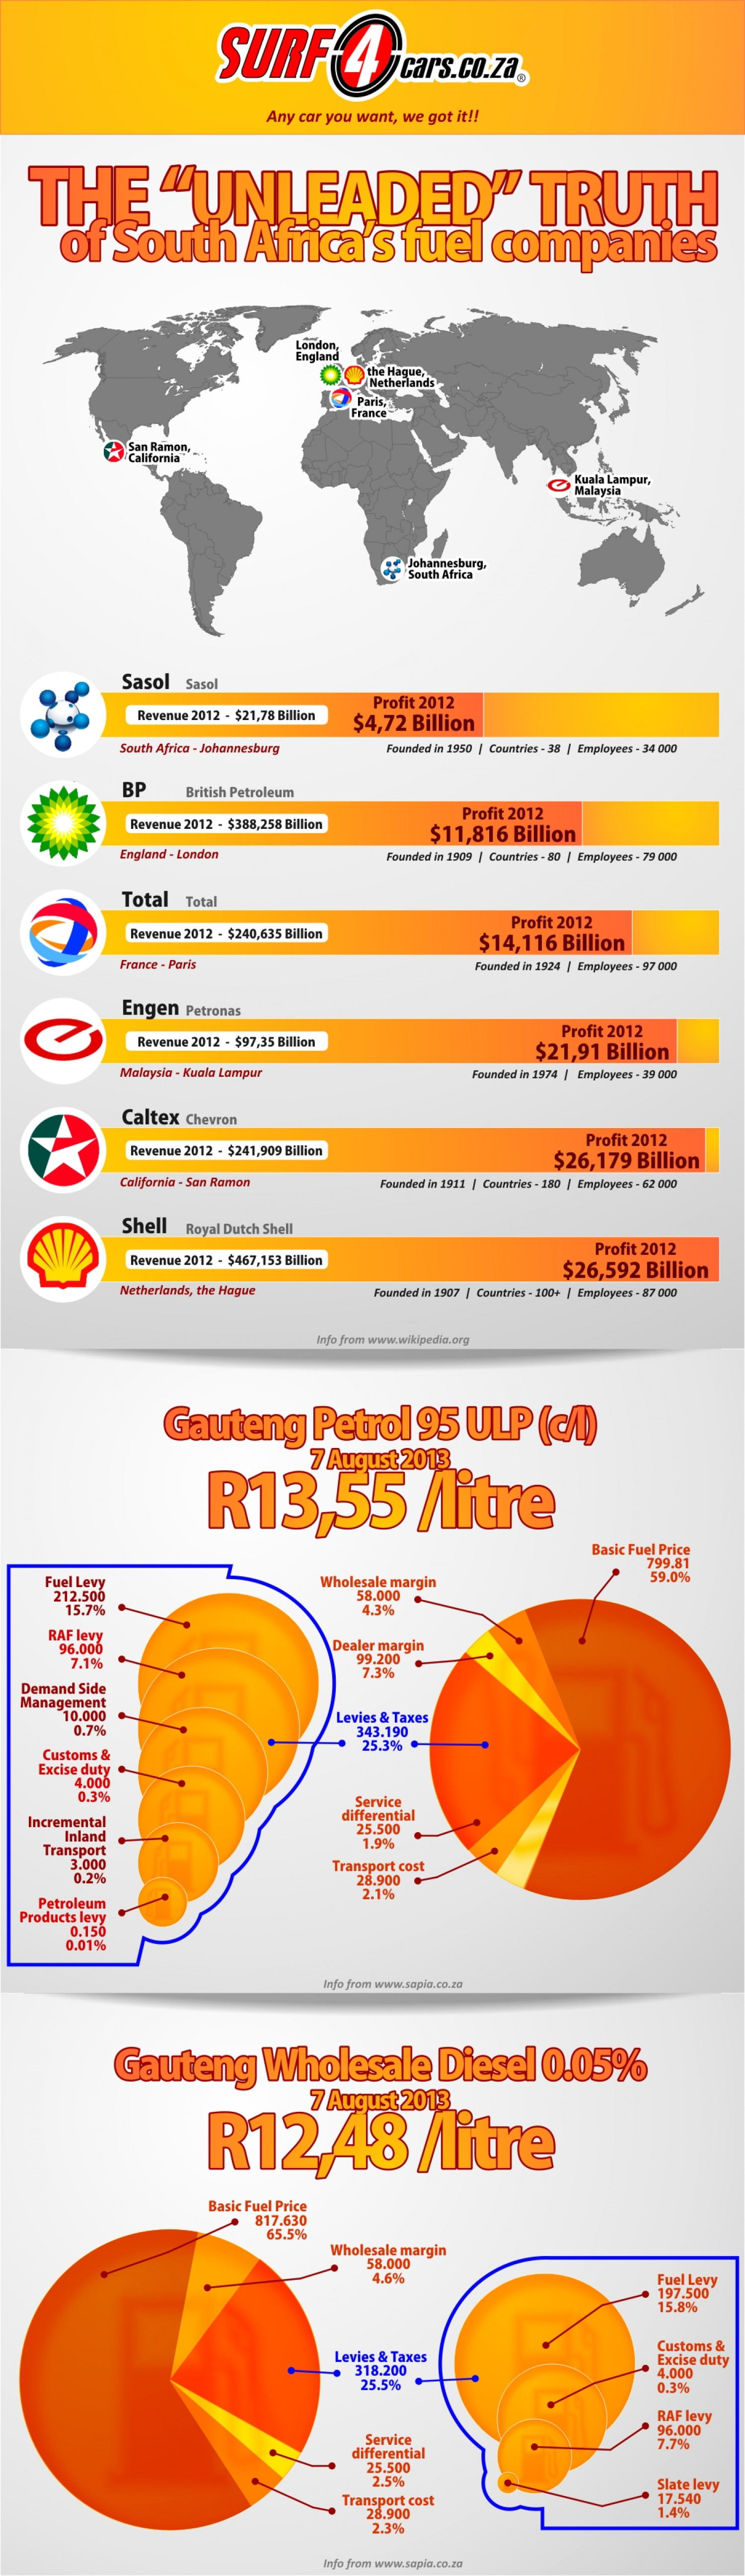 "The ""Unleaded"" Truth About South Africa's Fuel Companies Infographic"